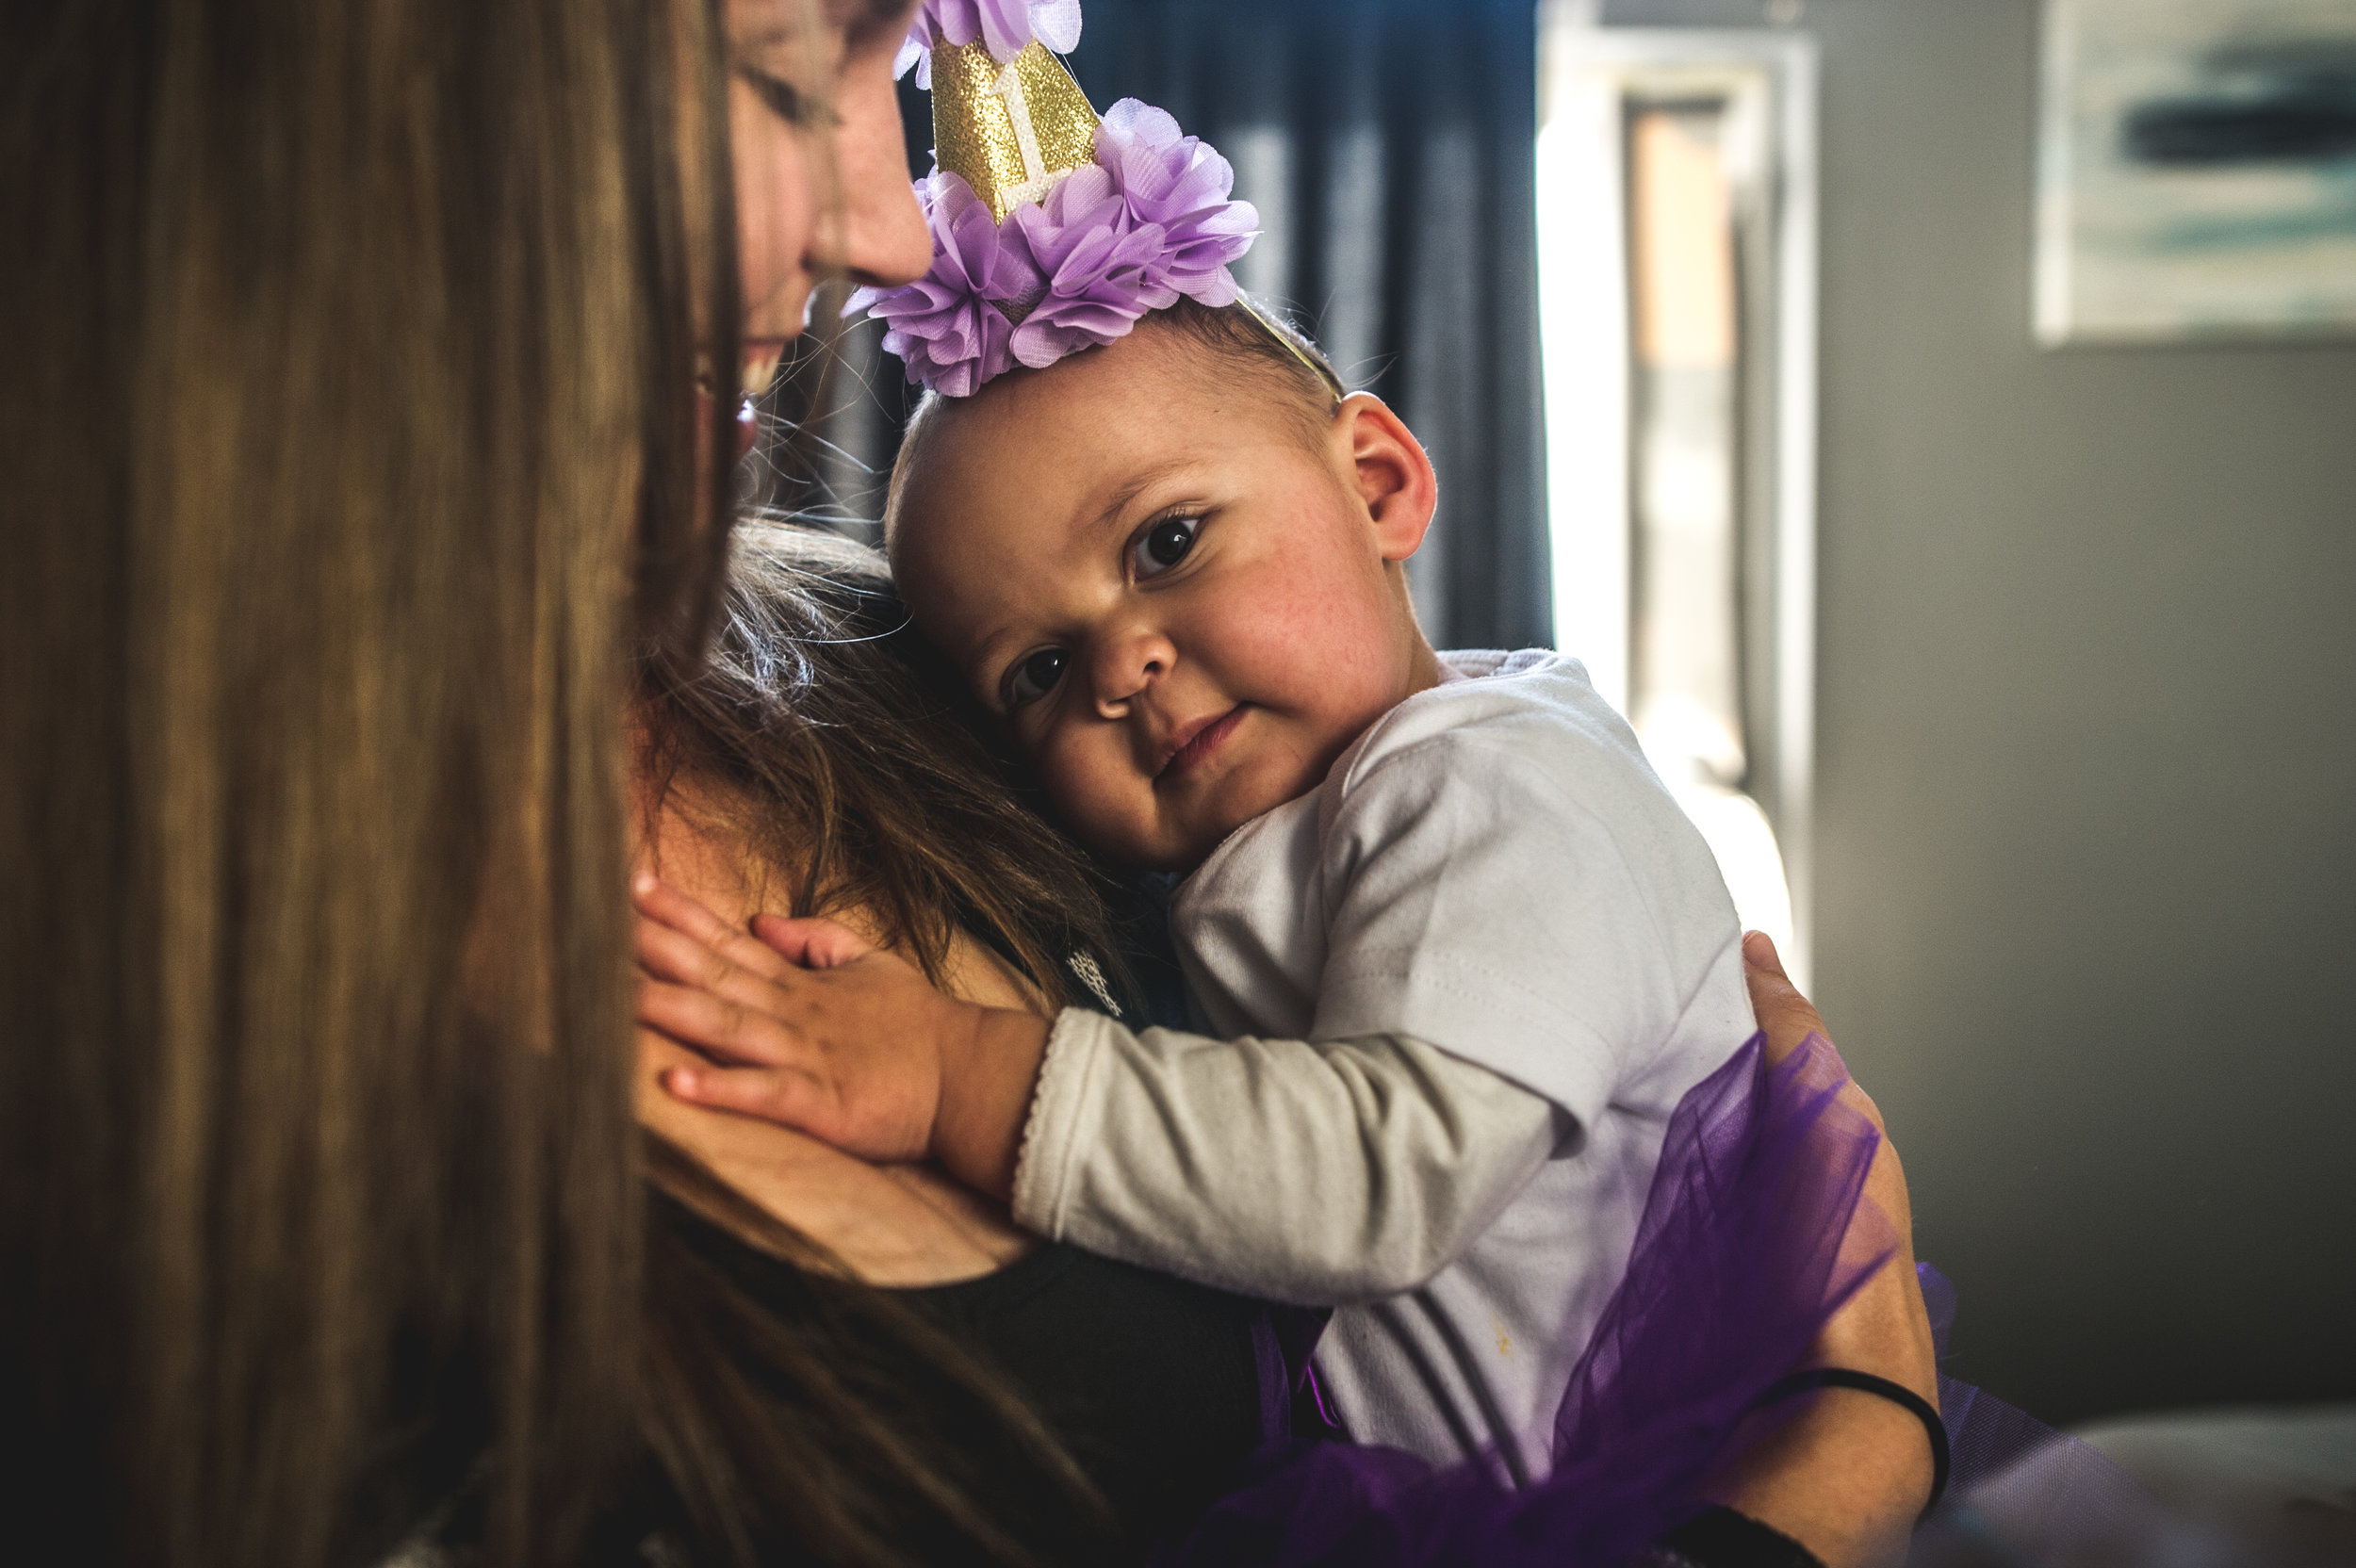 One year old girl wearing a purple tutu and party hat cuddling up to her mommy, Aurora, Colorado